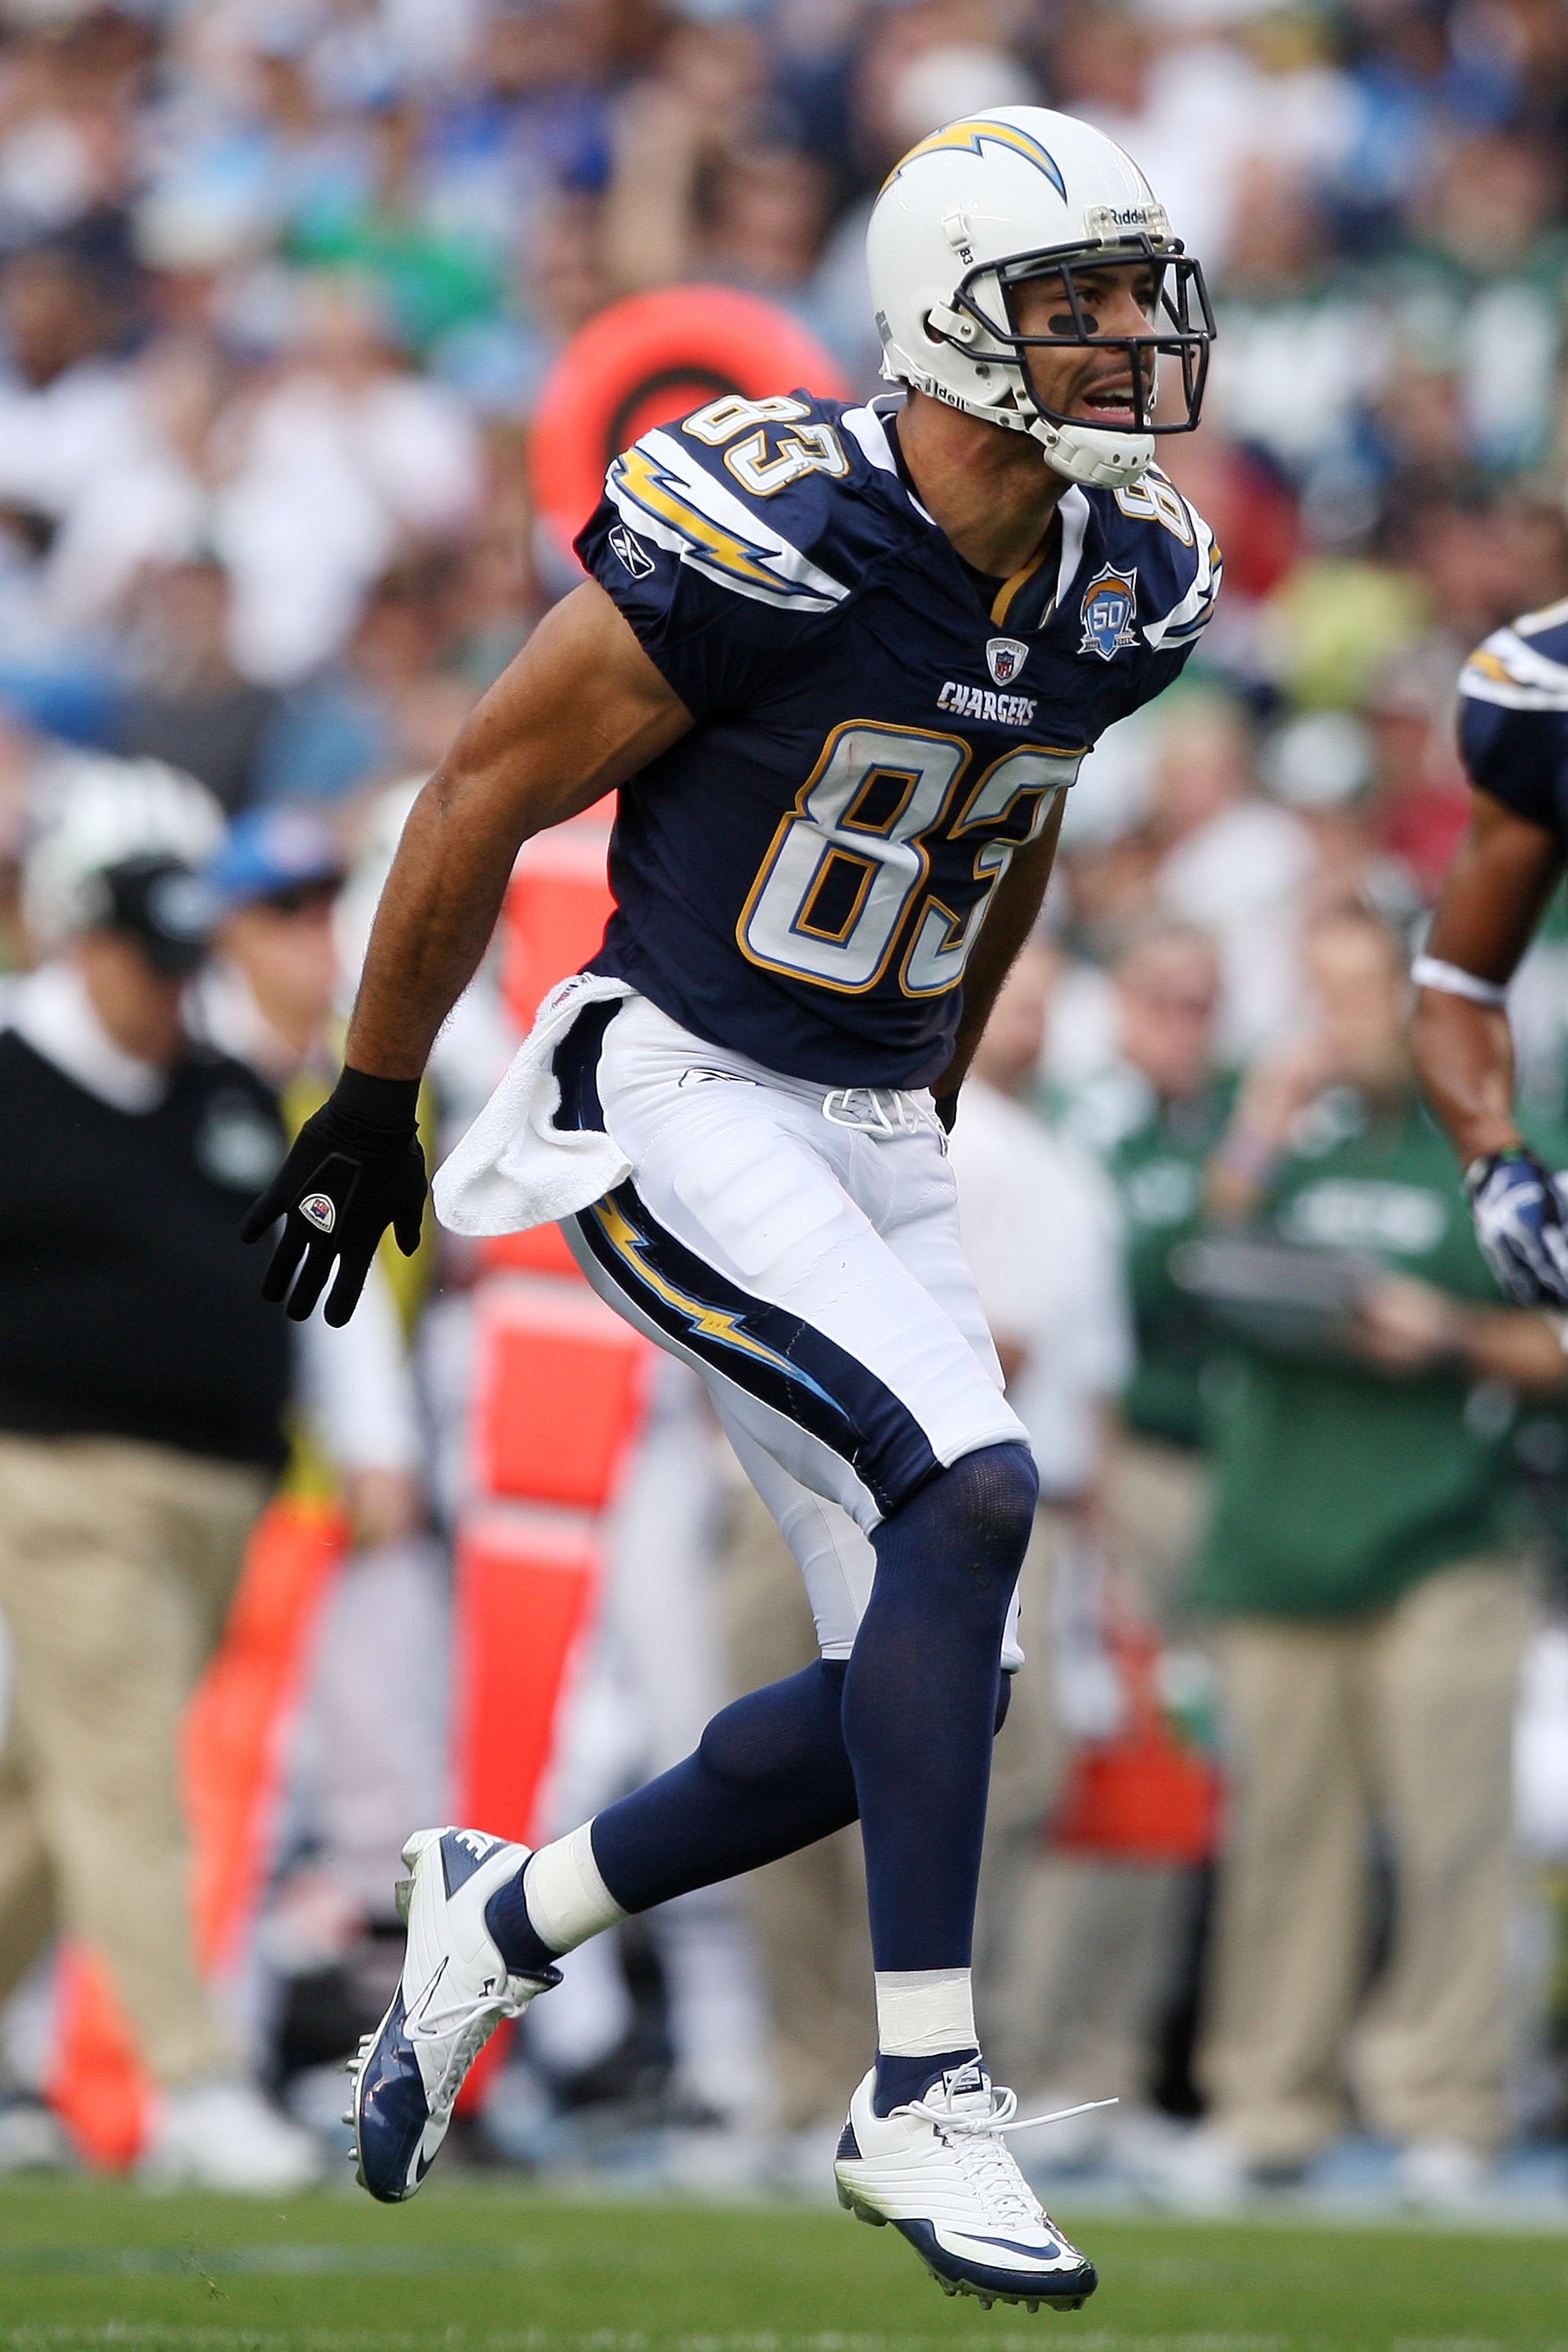 SAN DIEGO - JANUARY 17:  Wide receiver Vincent Jackson #83 of the San Diego Chargers reacts after a play against the New York Jets during  AFC Divisional Playoff Game at Qualcomm Stadium on January 17, 2010 in San Diego, California.  (Photo by Donald Mira